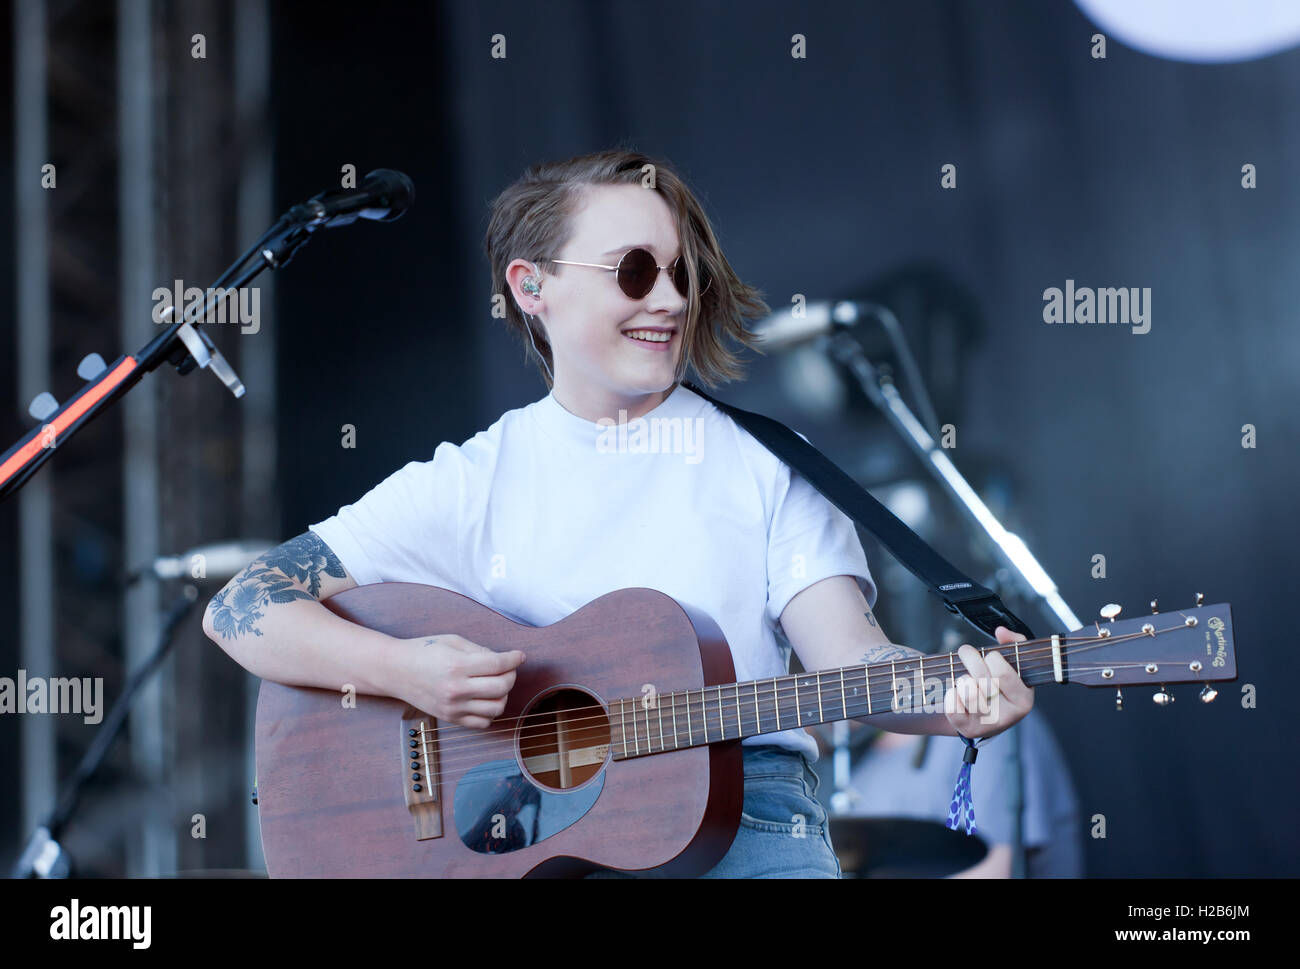 Bridie Monds-Watson performing as Soak, on the main stage at the OnBlackheath Music Festival 2016 - Stock Image